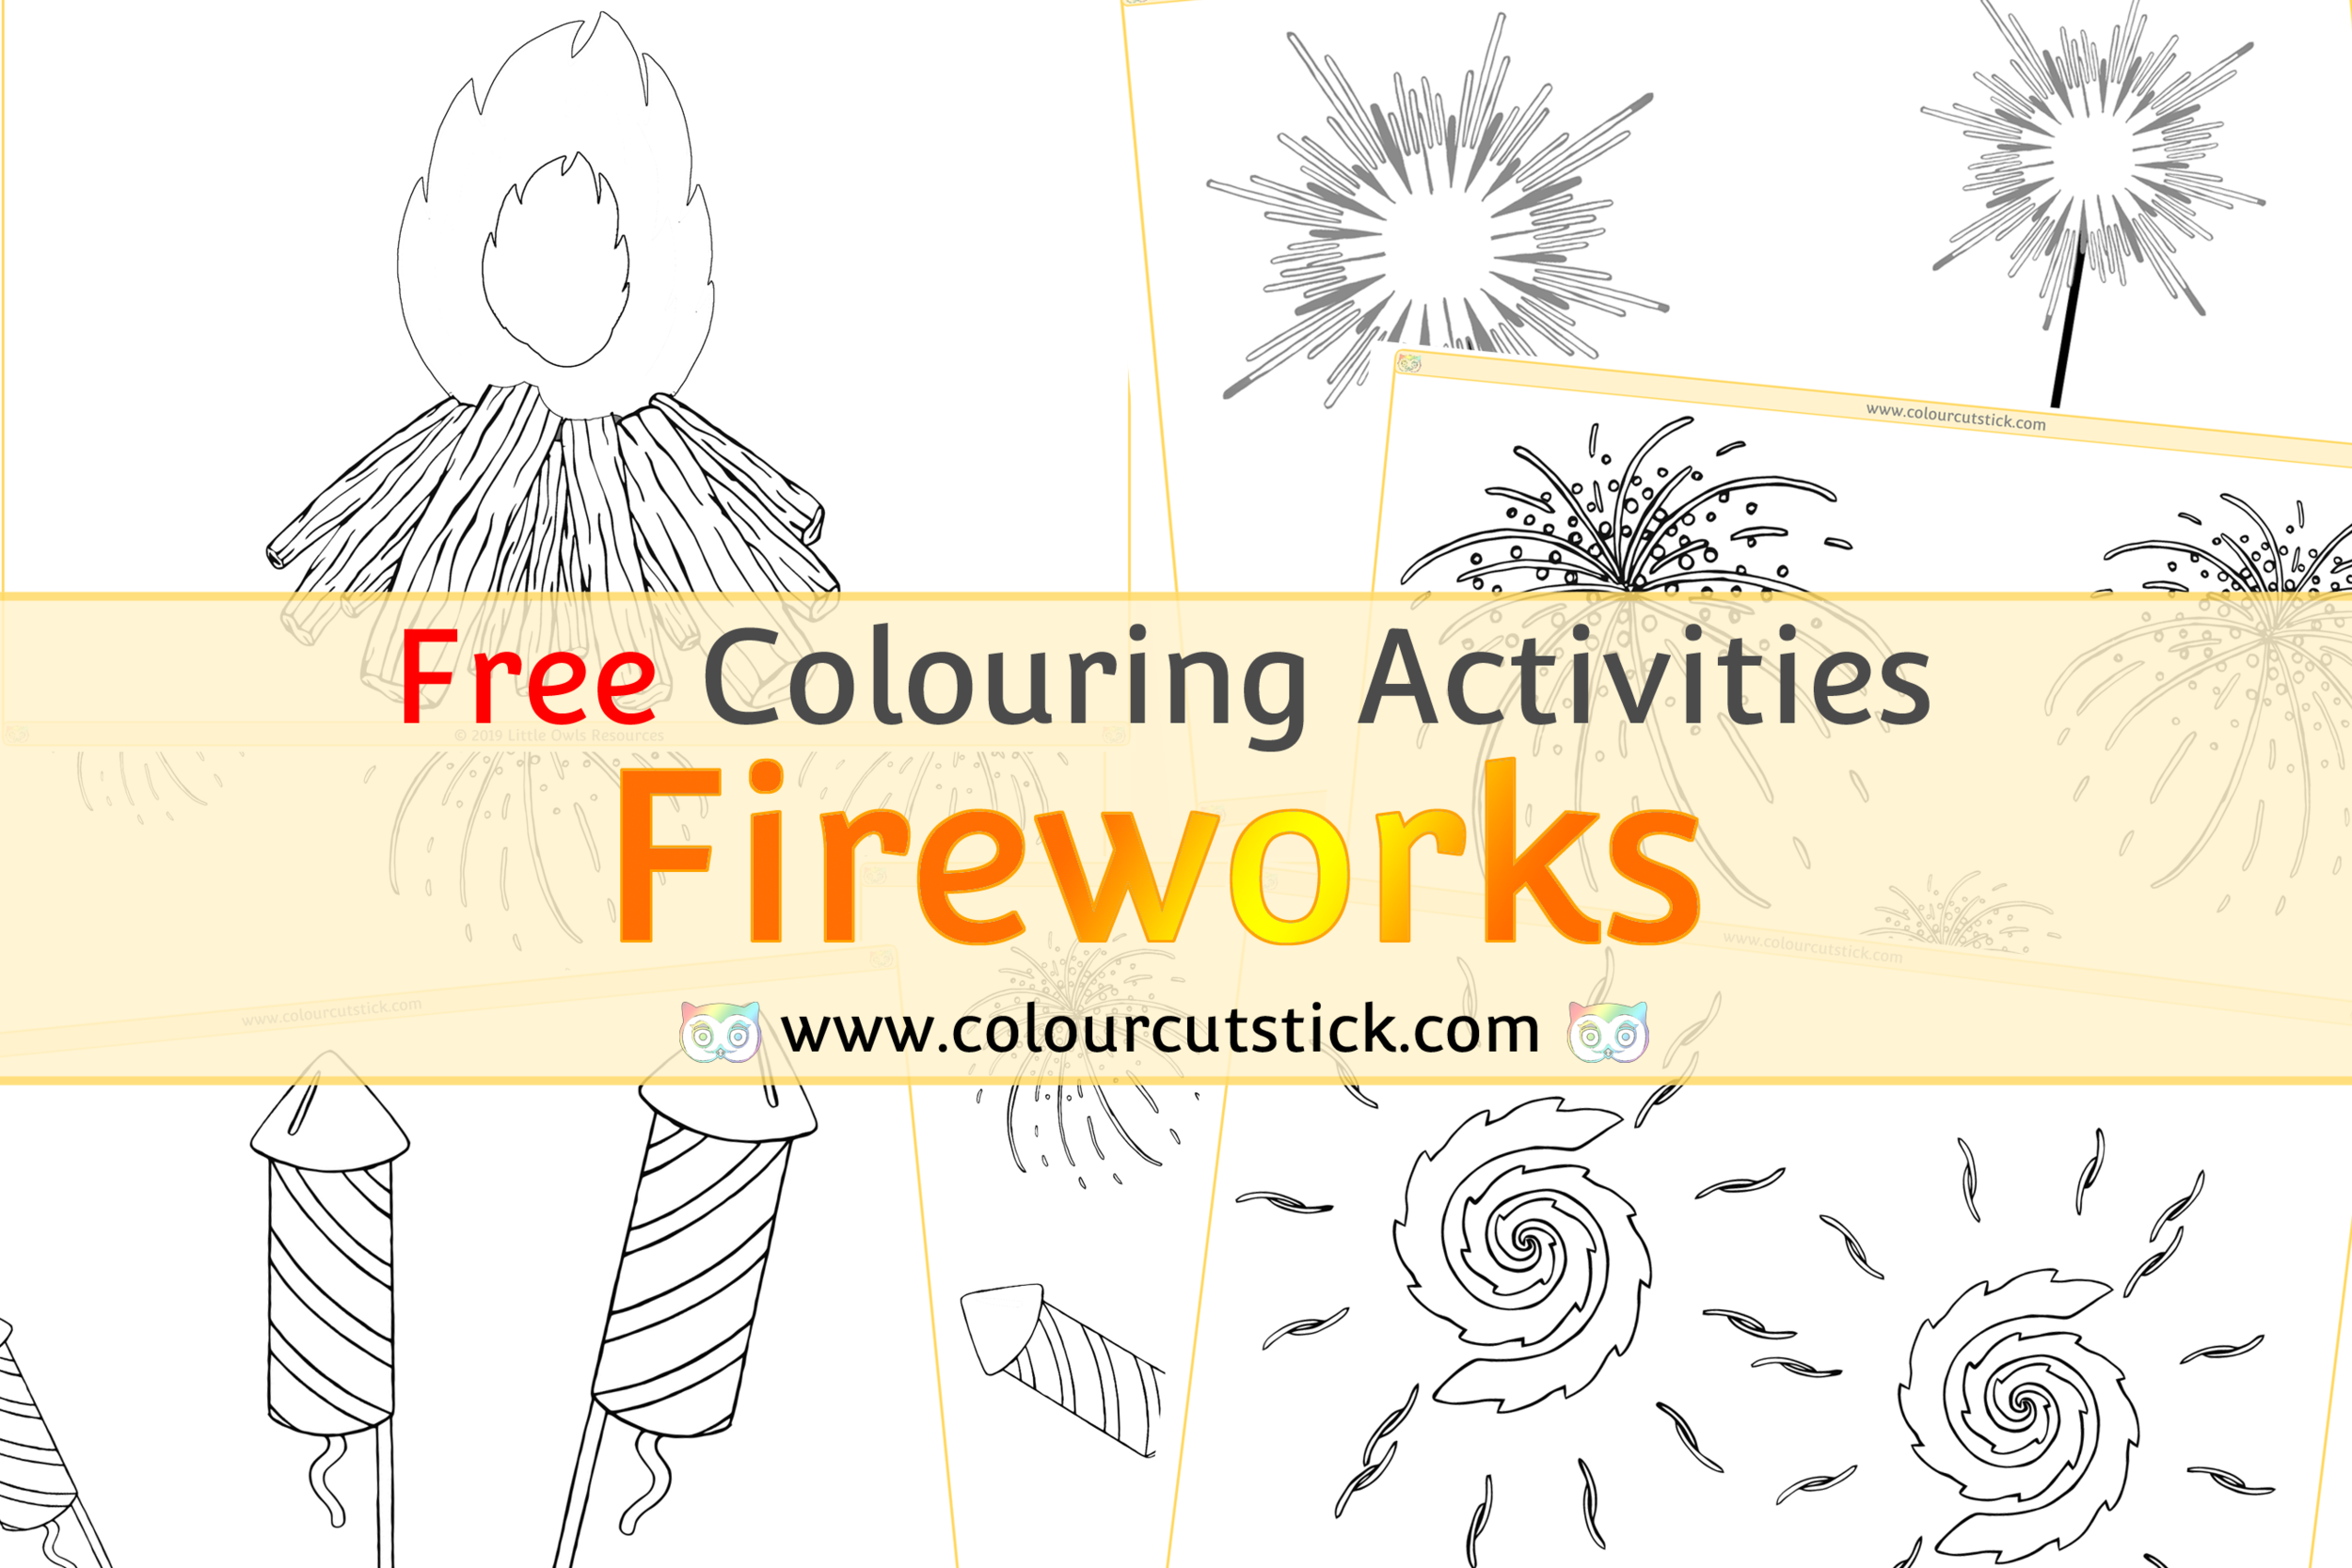 Fireworks/Bonfire/Guy Fawkes Night Colouring